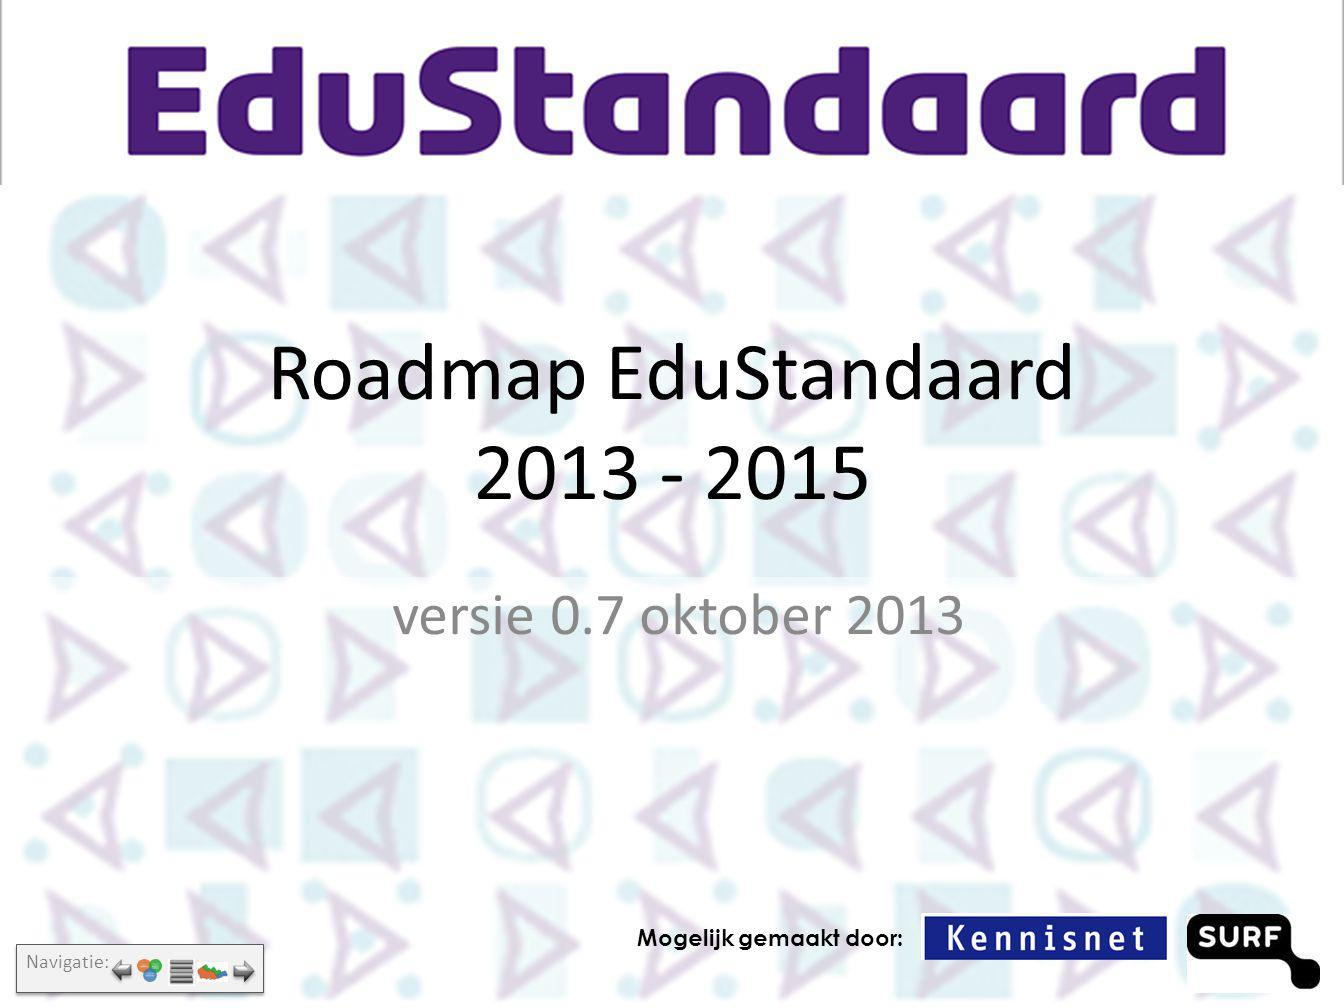 Roadmap EduStandaard 2013 - 2015